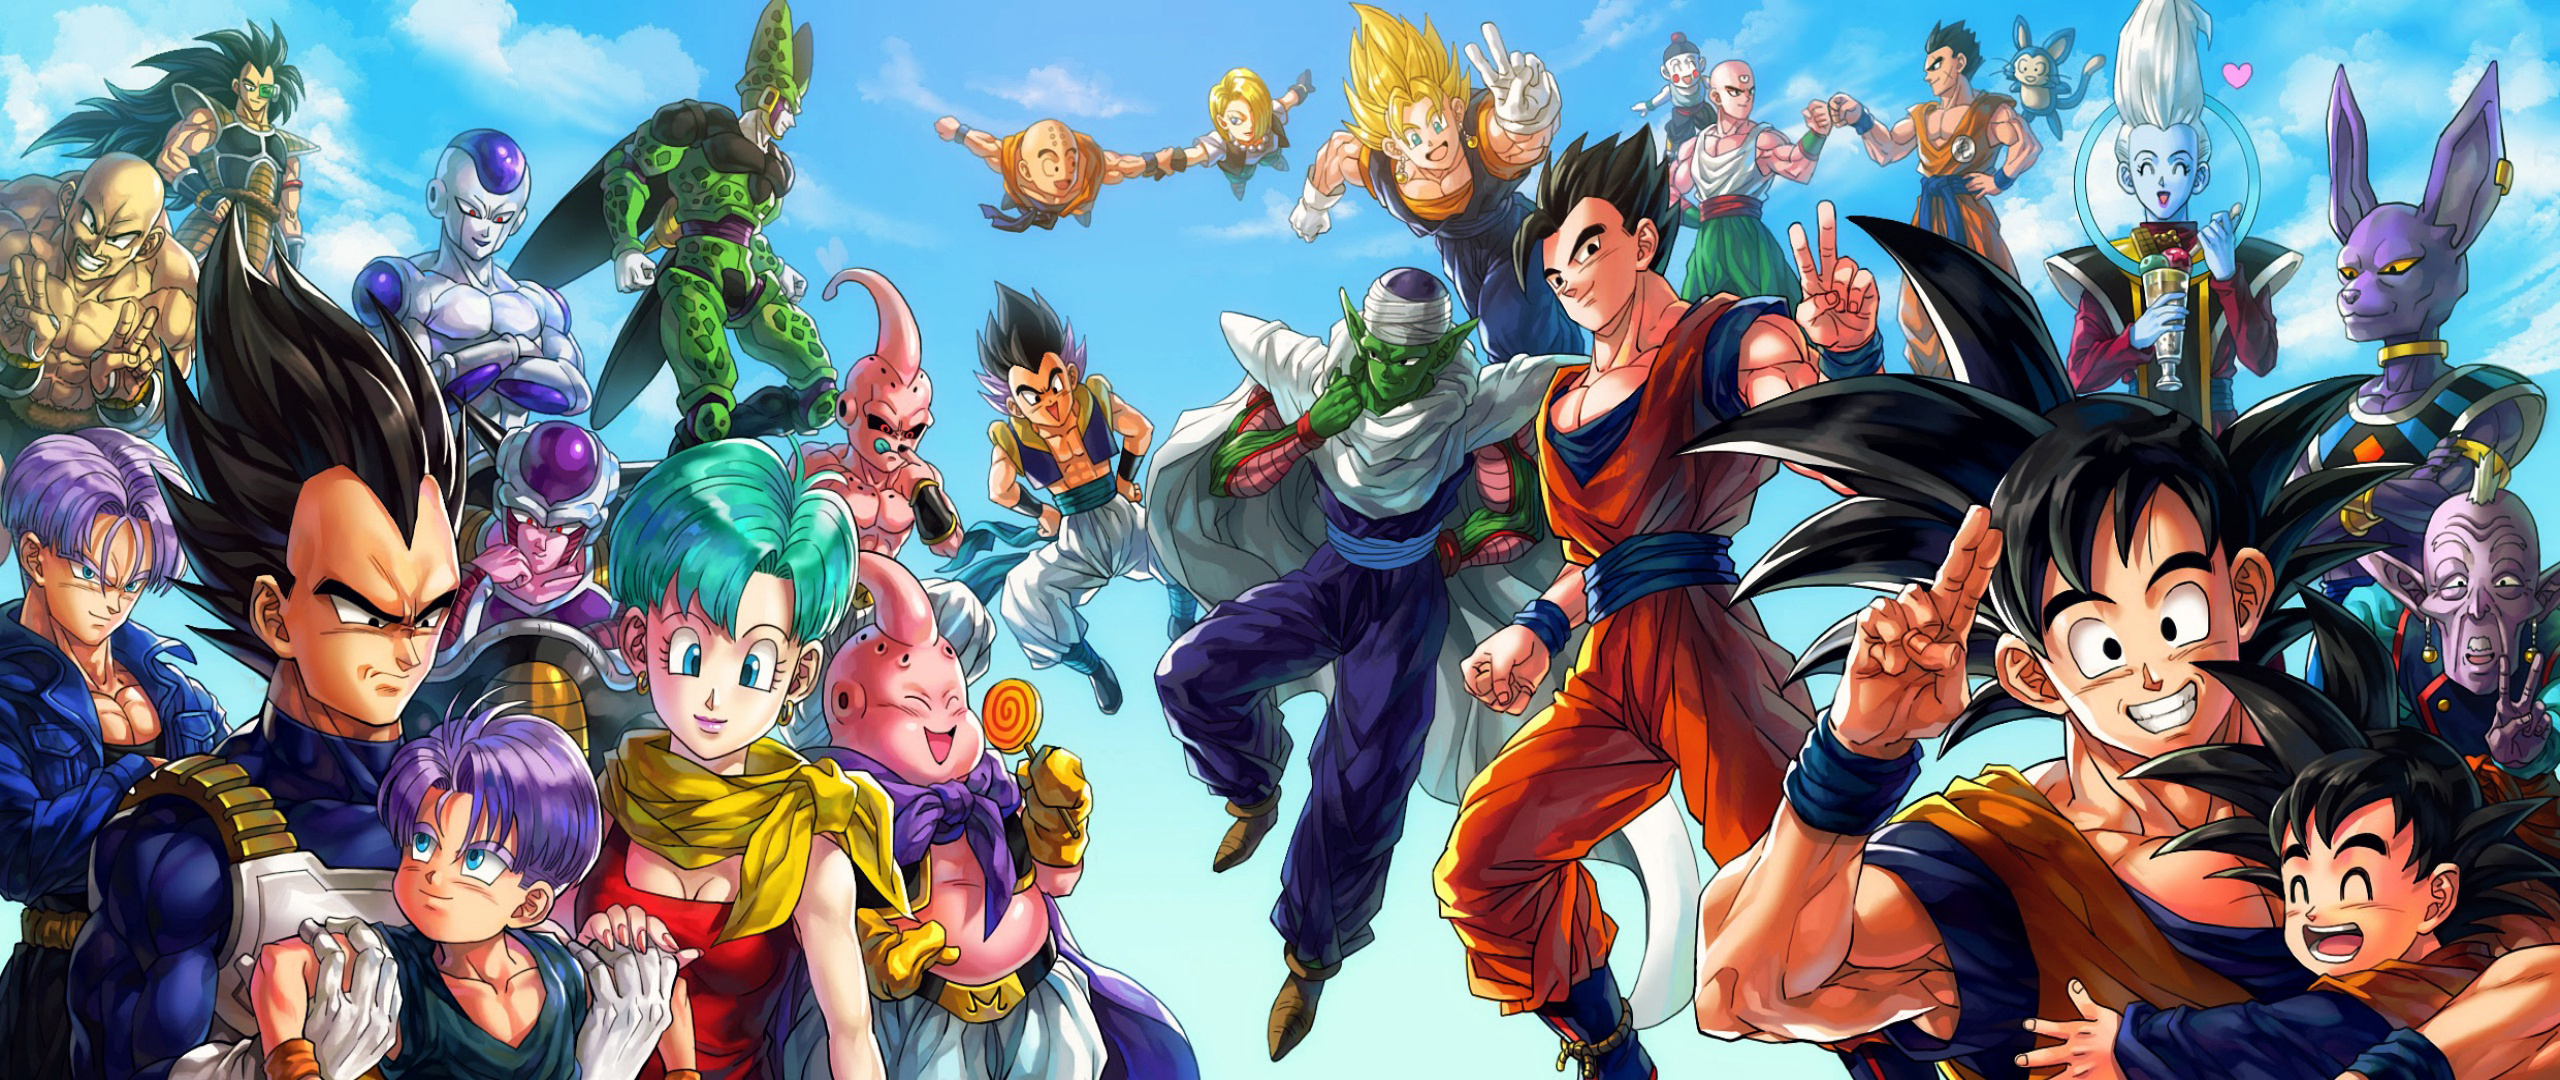 42 Goten Dragon Ball Hd Wallpapers Background Images Wallpaper